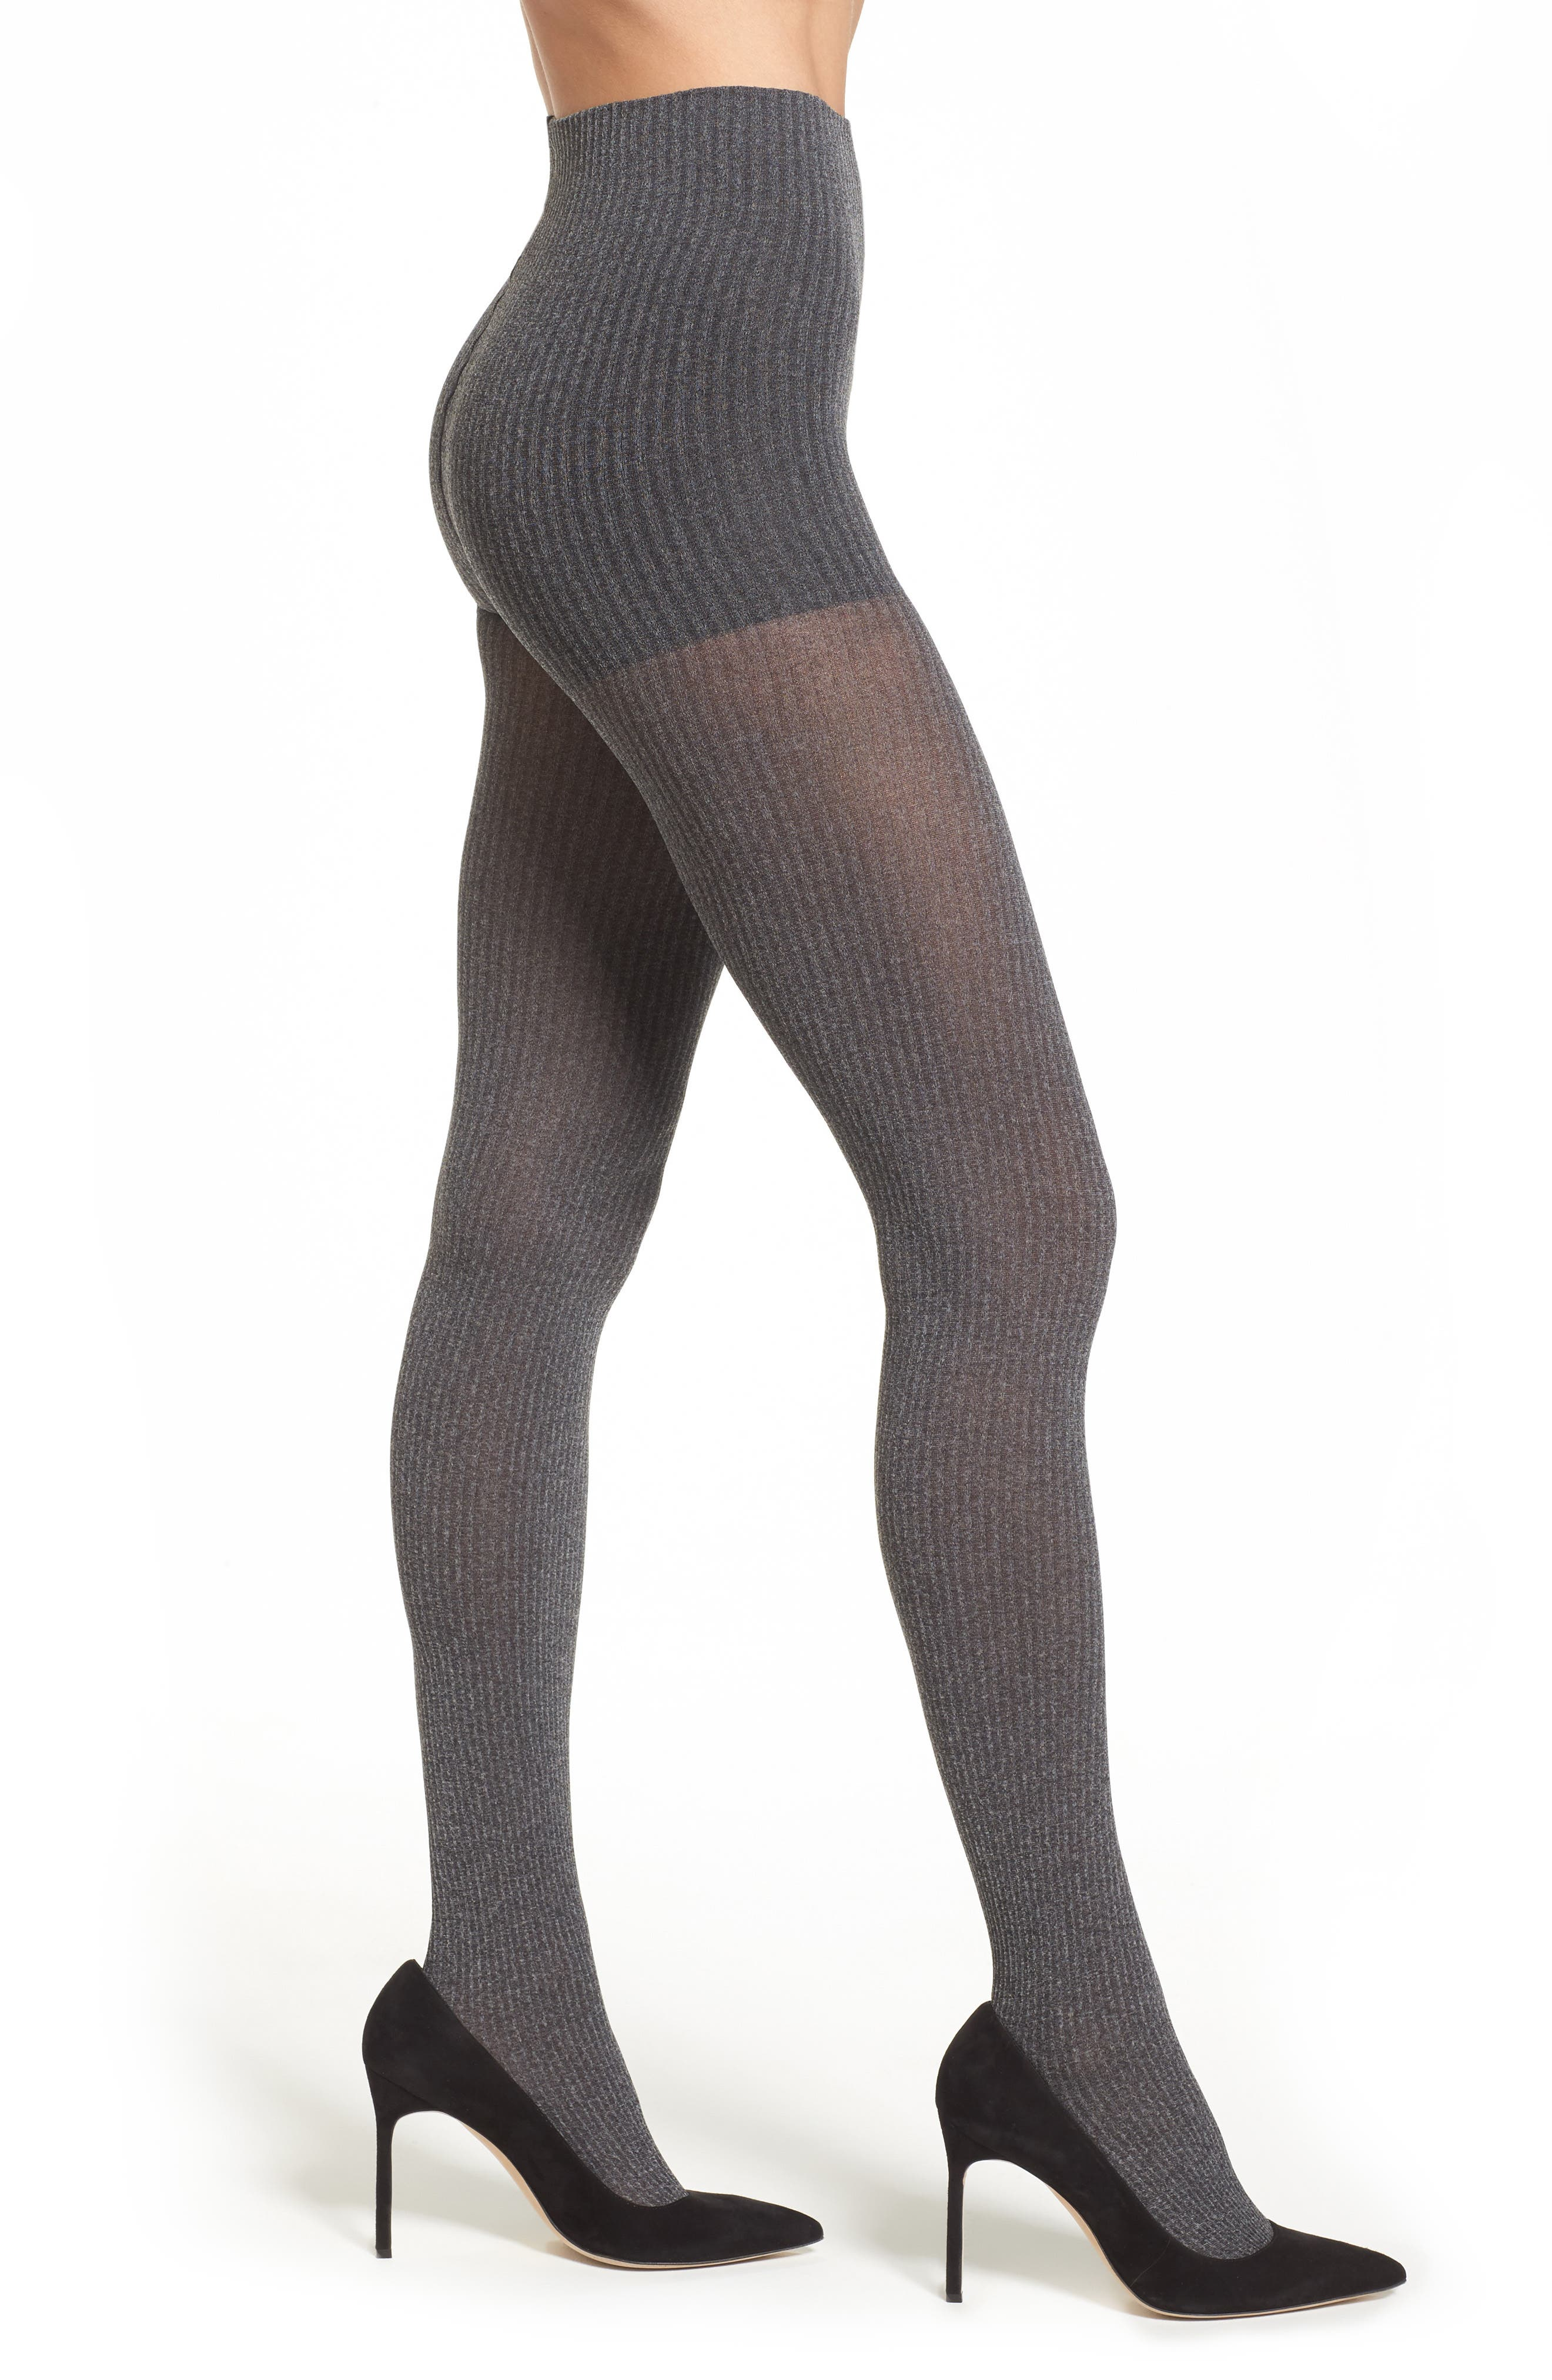 DKNY SkinSense™ Rib Knit Tights